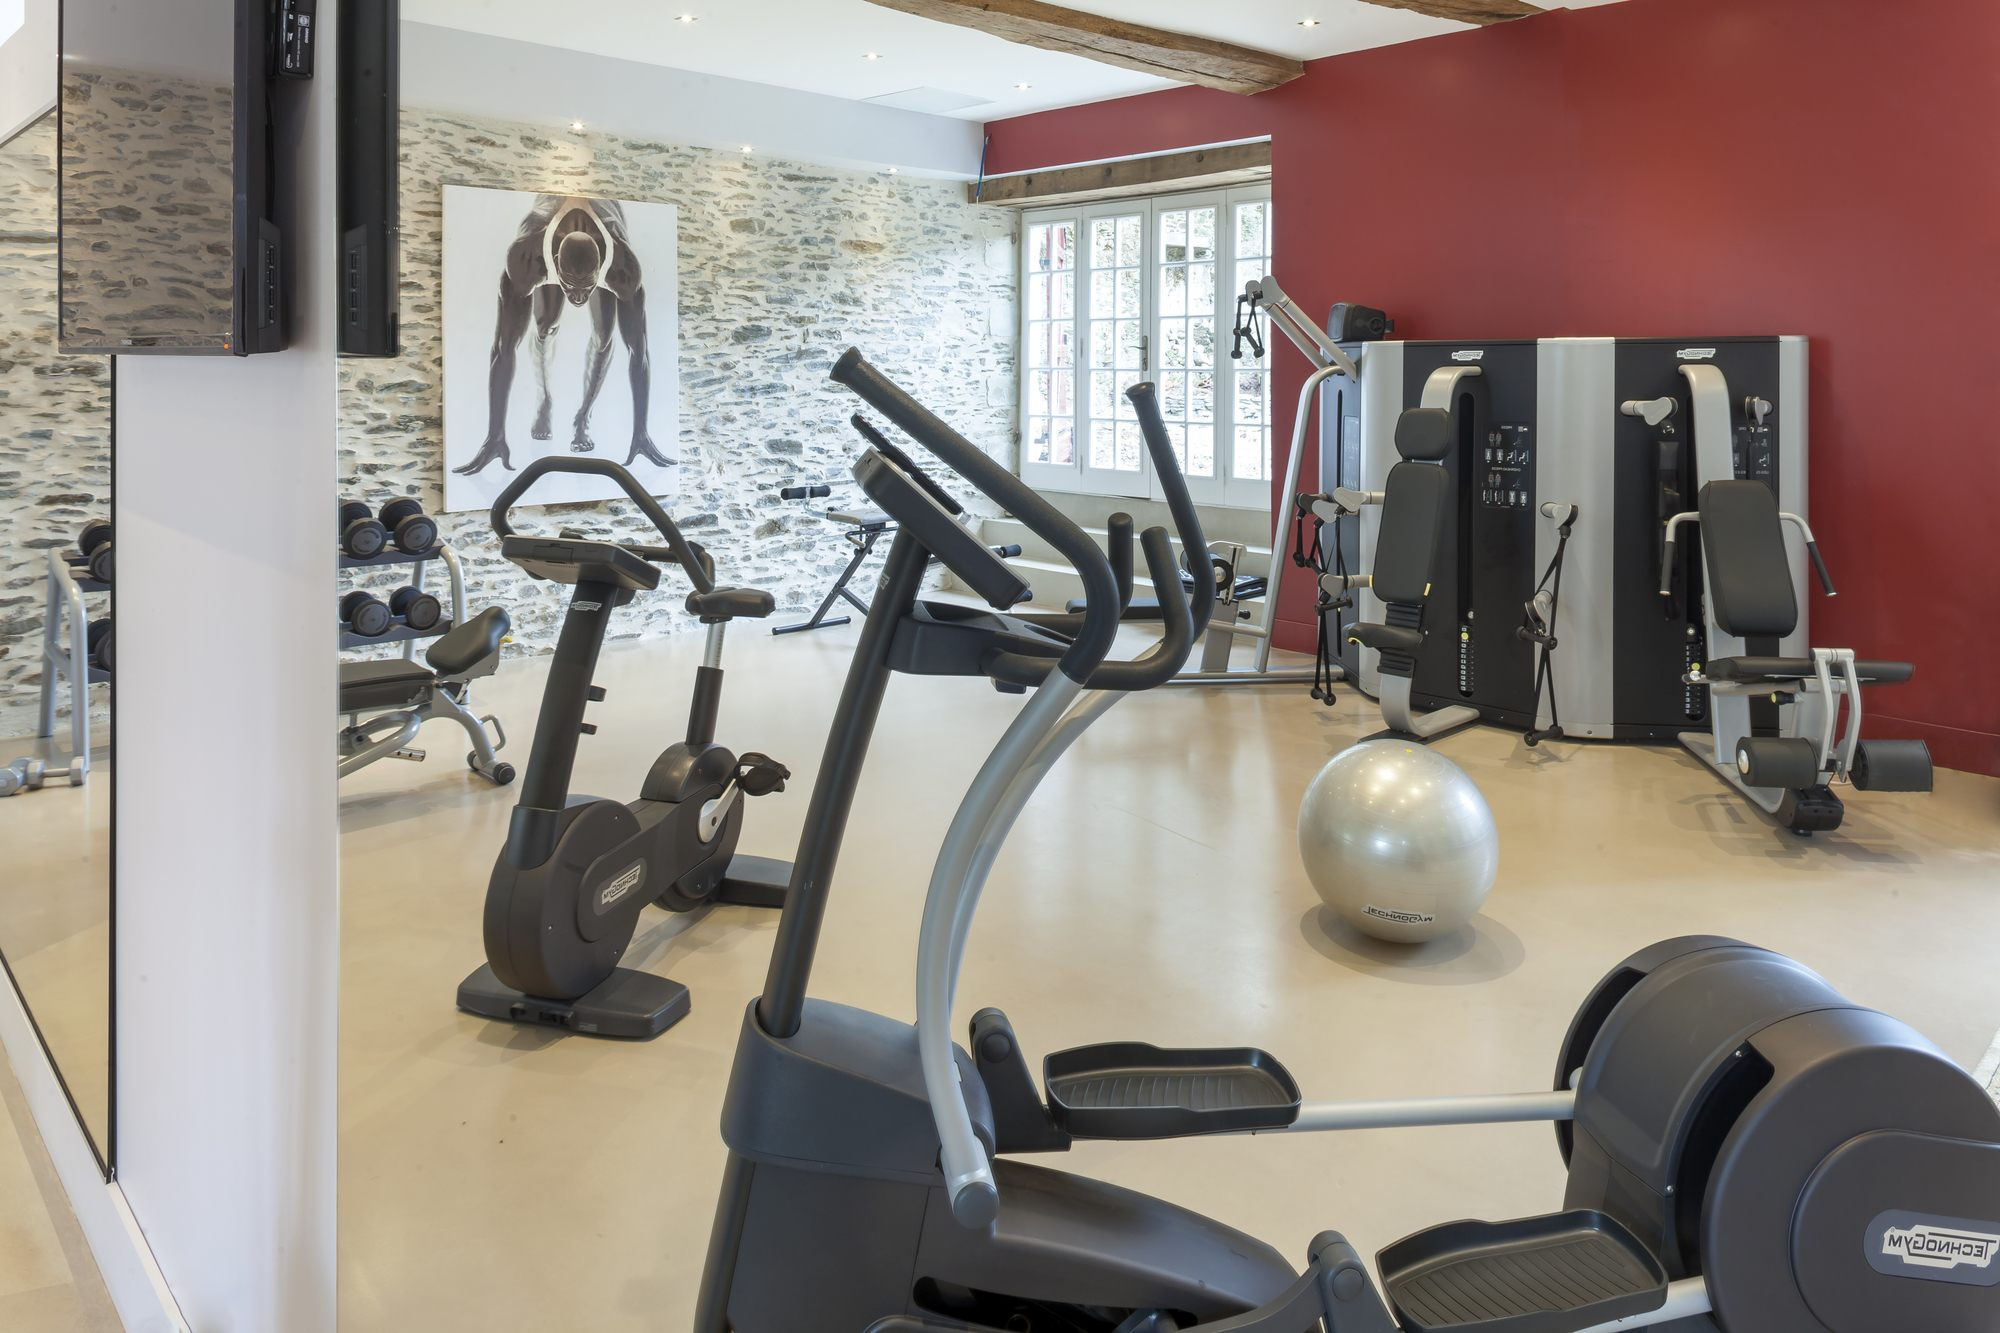 chateau epinay spa angers fitness salle sport